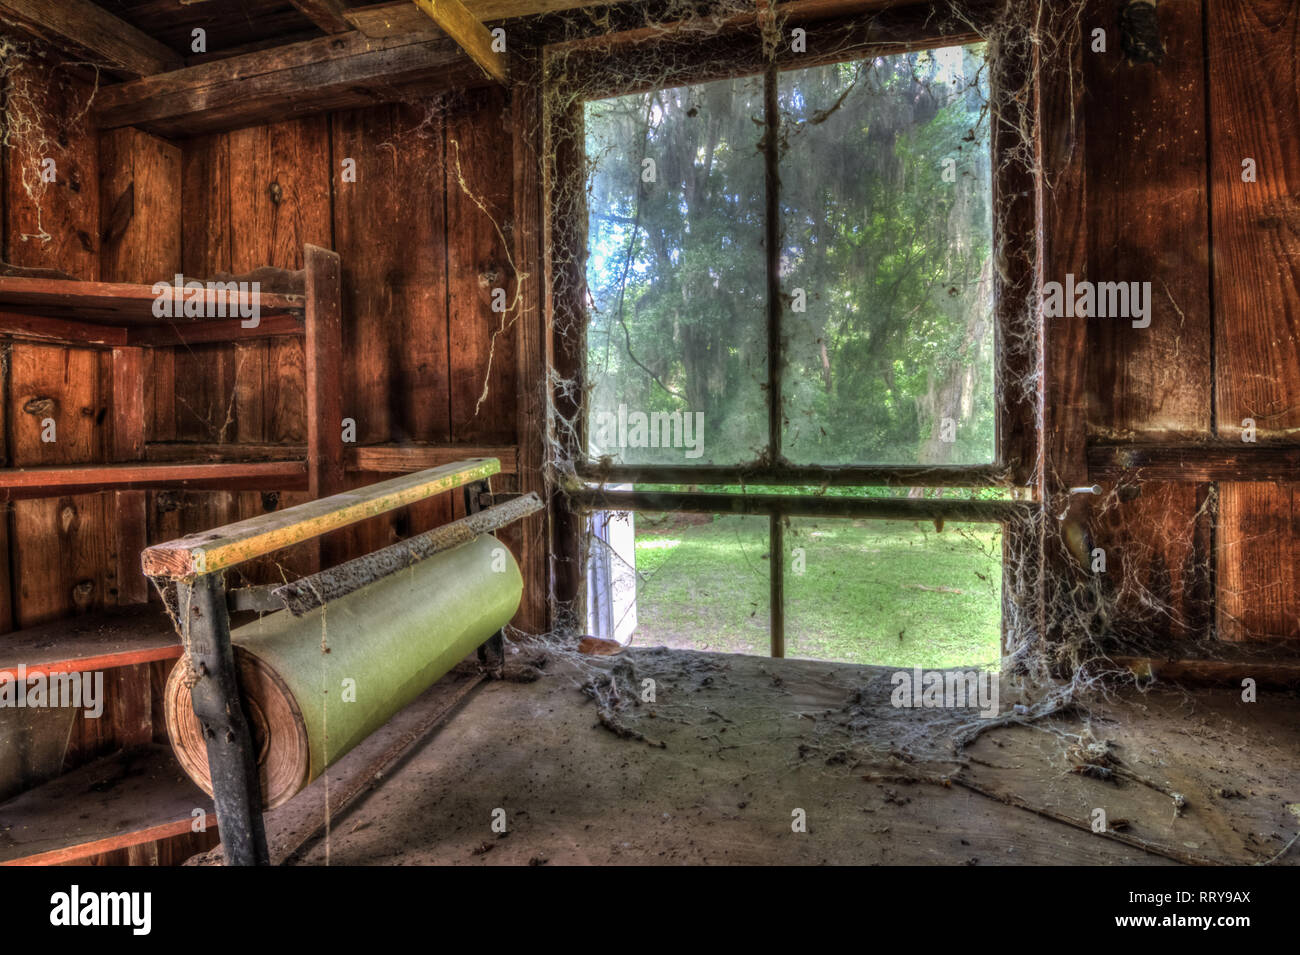 In the corner of a dusty old cobweb filled barn lies an old wooden workbench once used as a packing station. - Stock Image